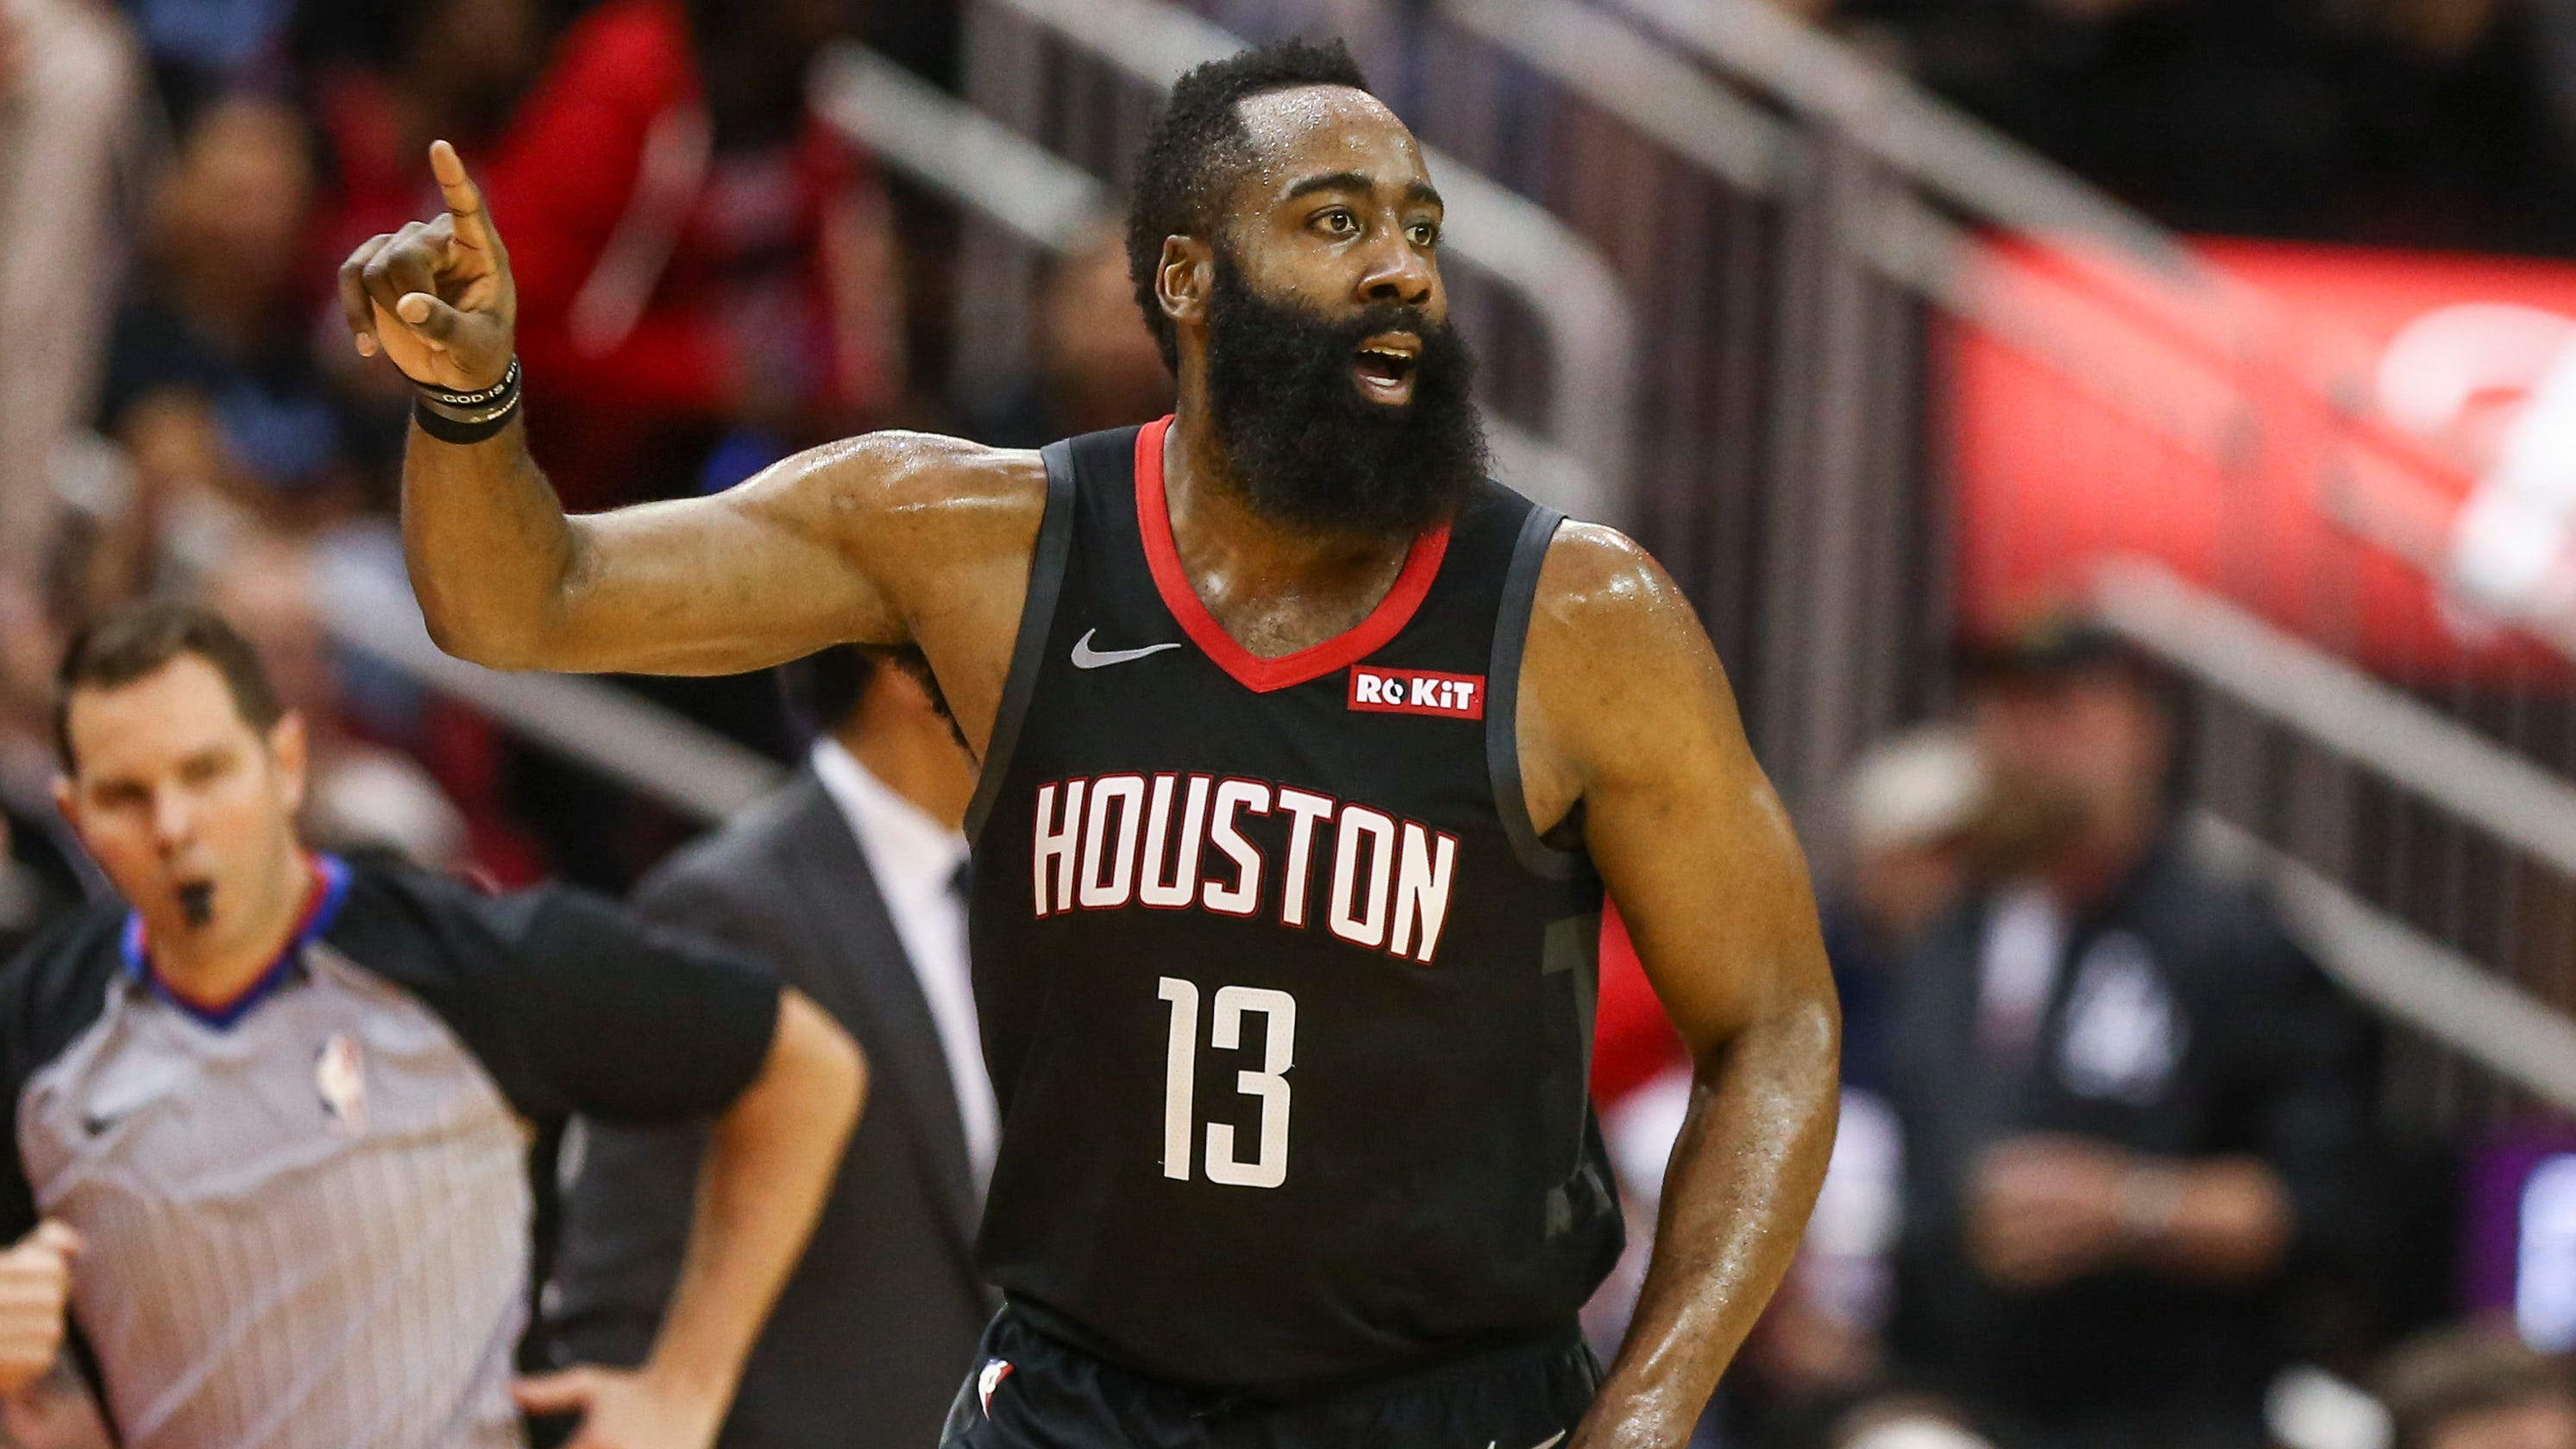 ca30aafc81d0 James Harden pours in 58 points to rally Rockets past Heat